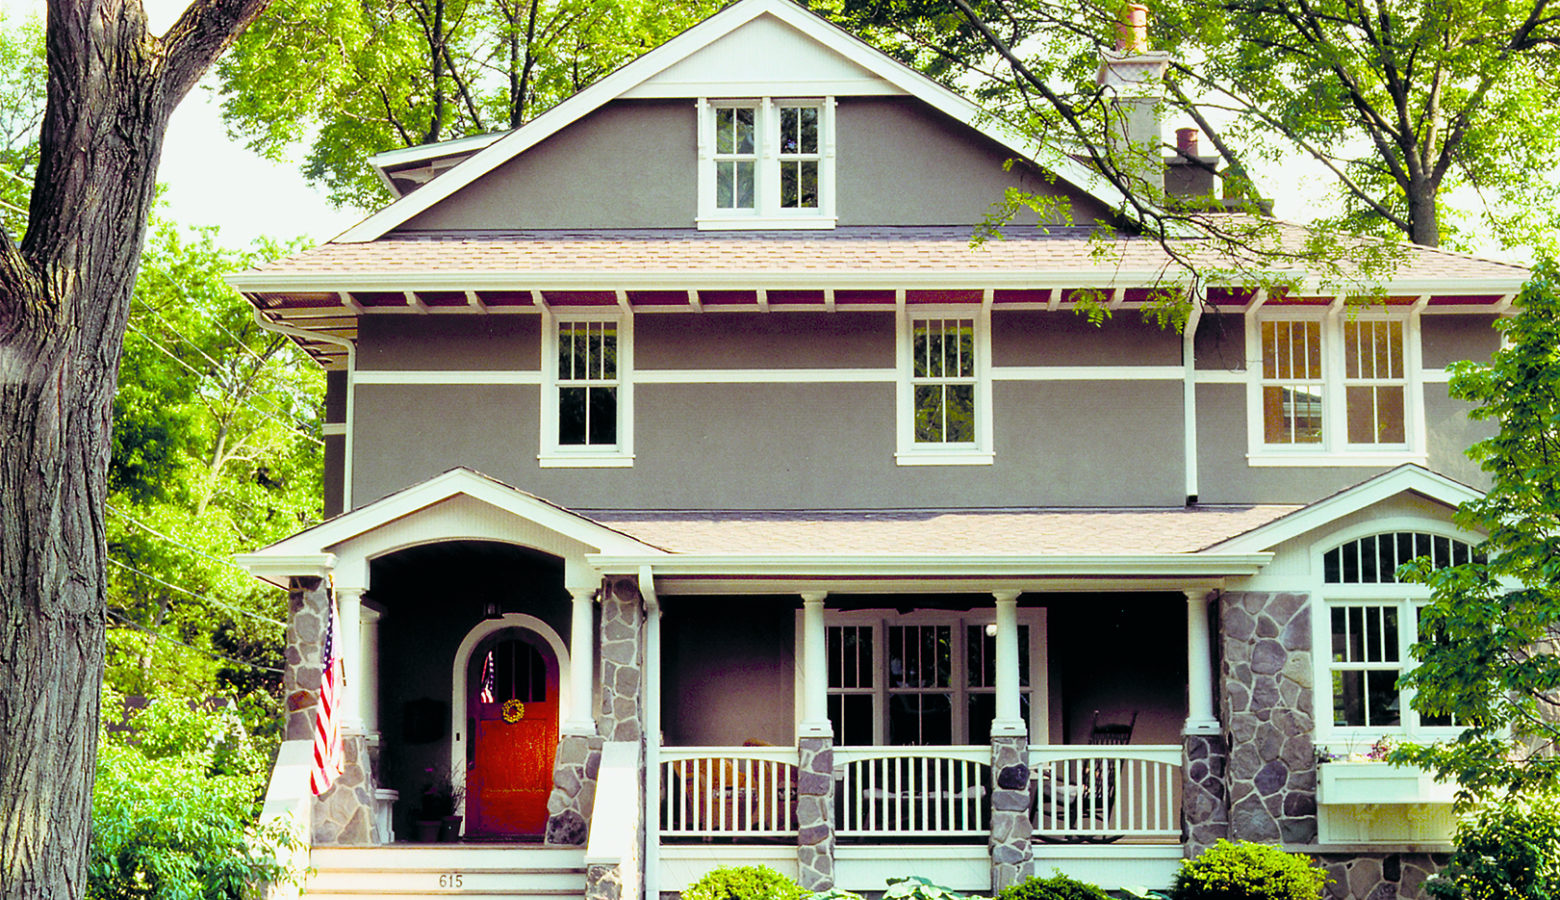 Residential Renovation:  How to decide if you should renovate or move